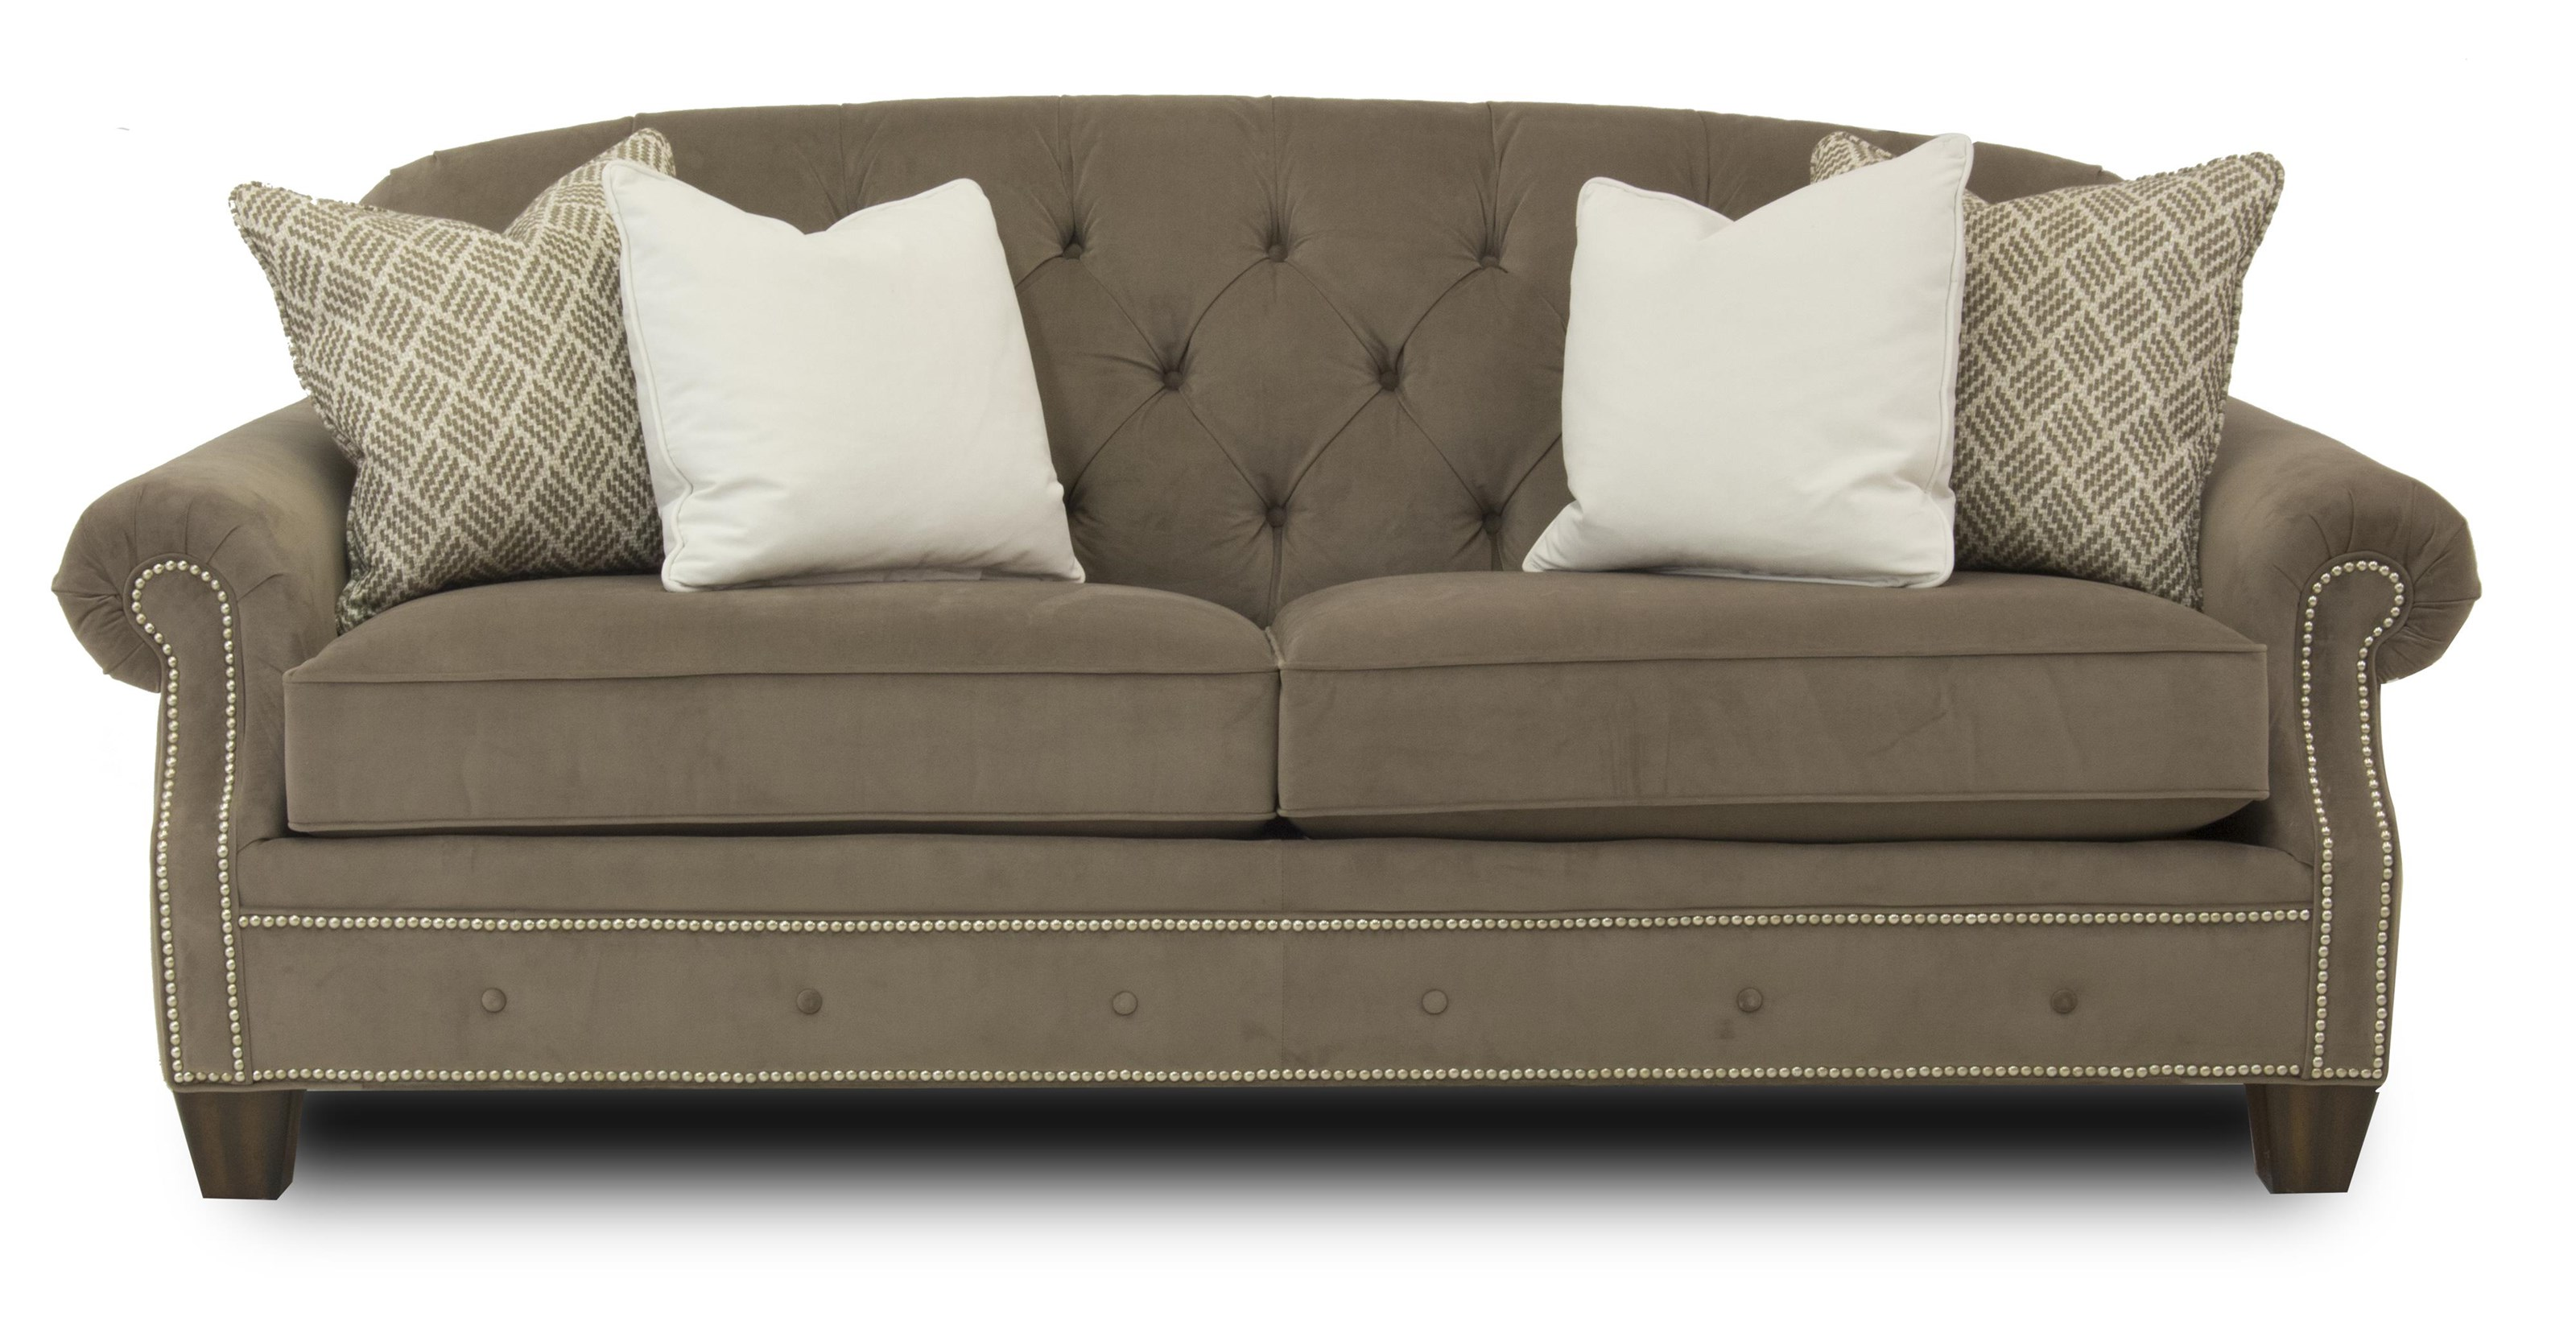 Transitional On Tufted Sofa With Rolled Arms And Nailheads